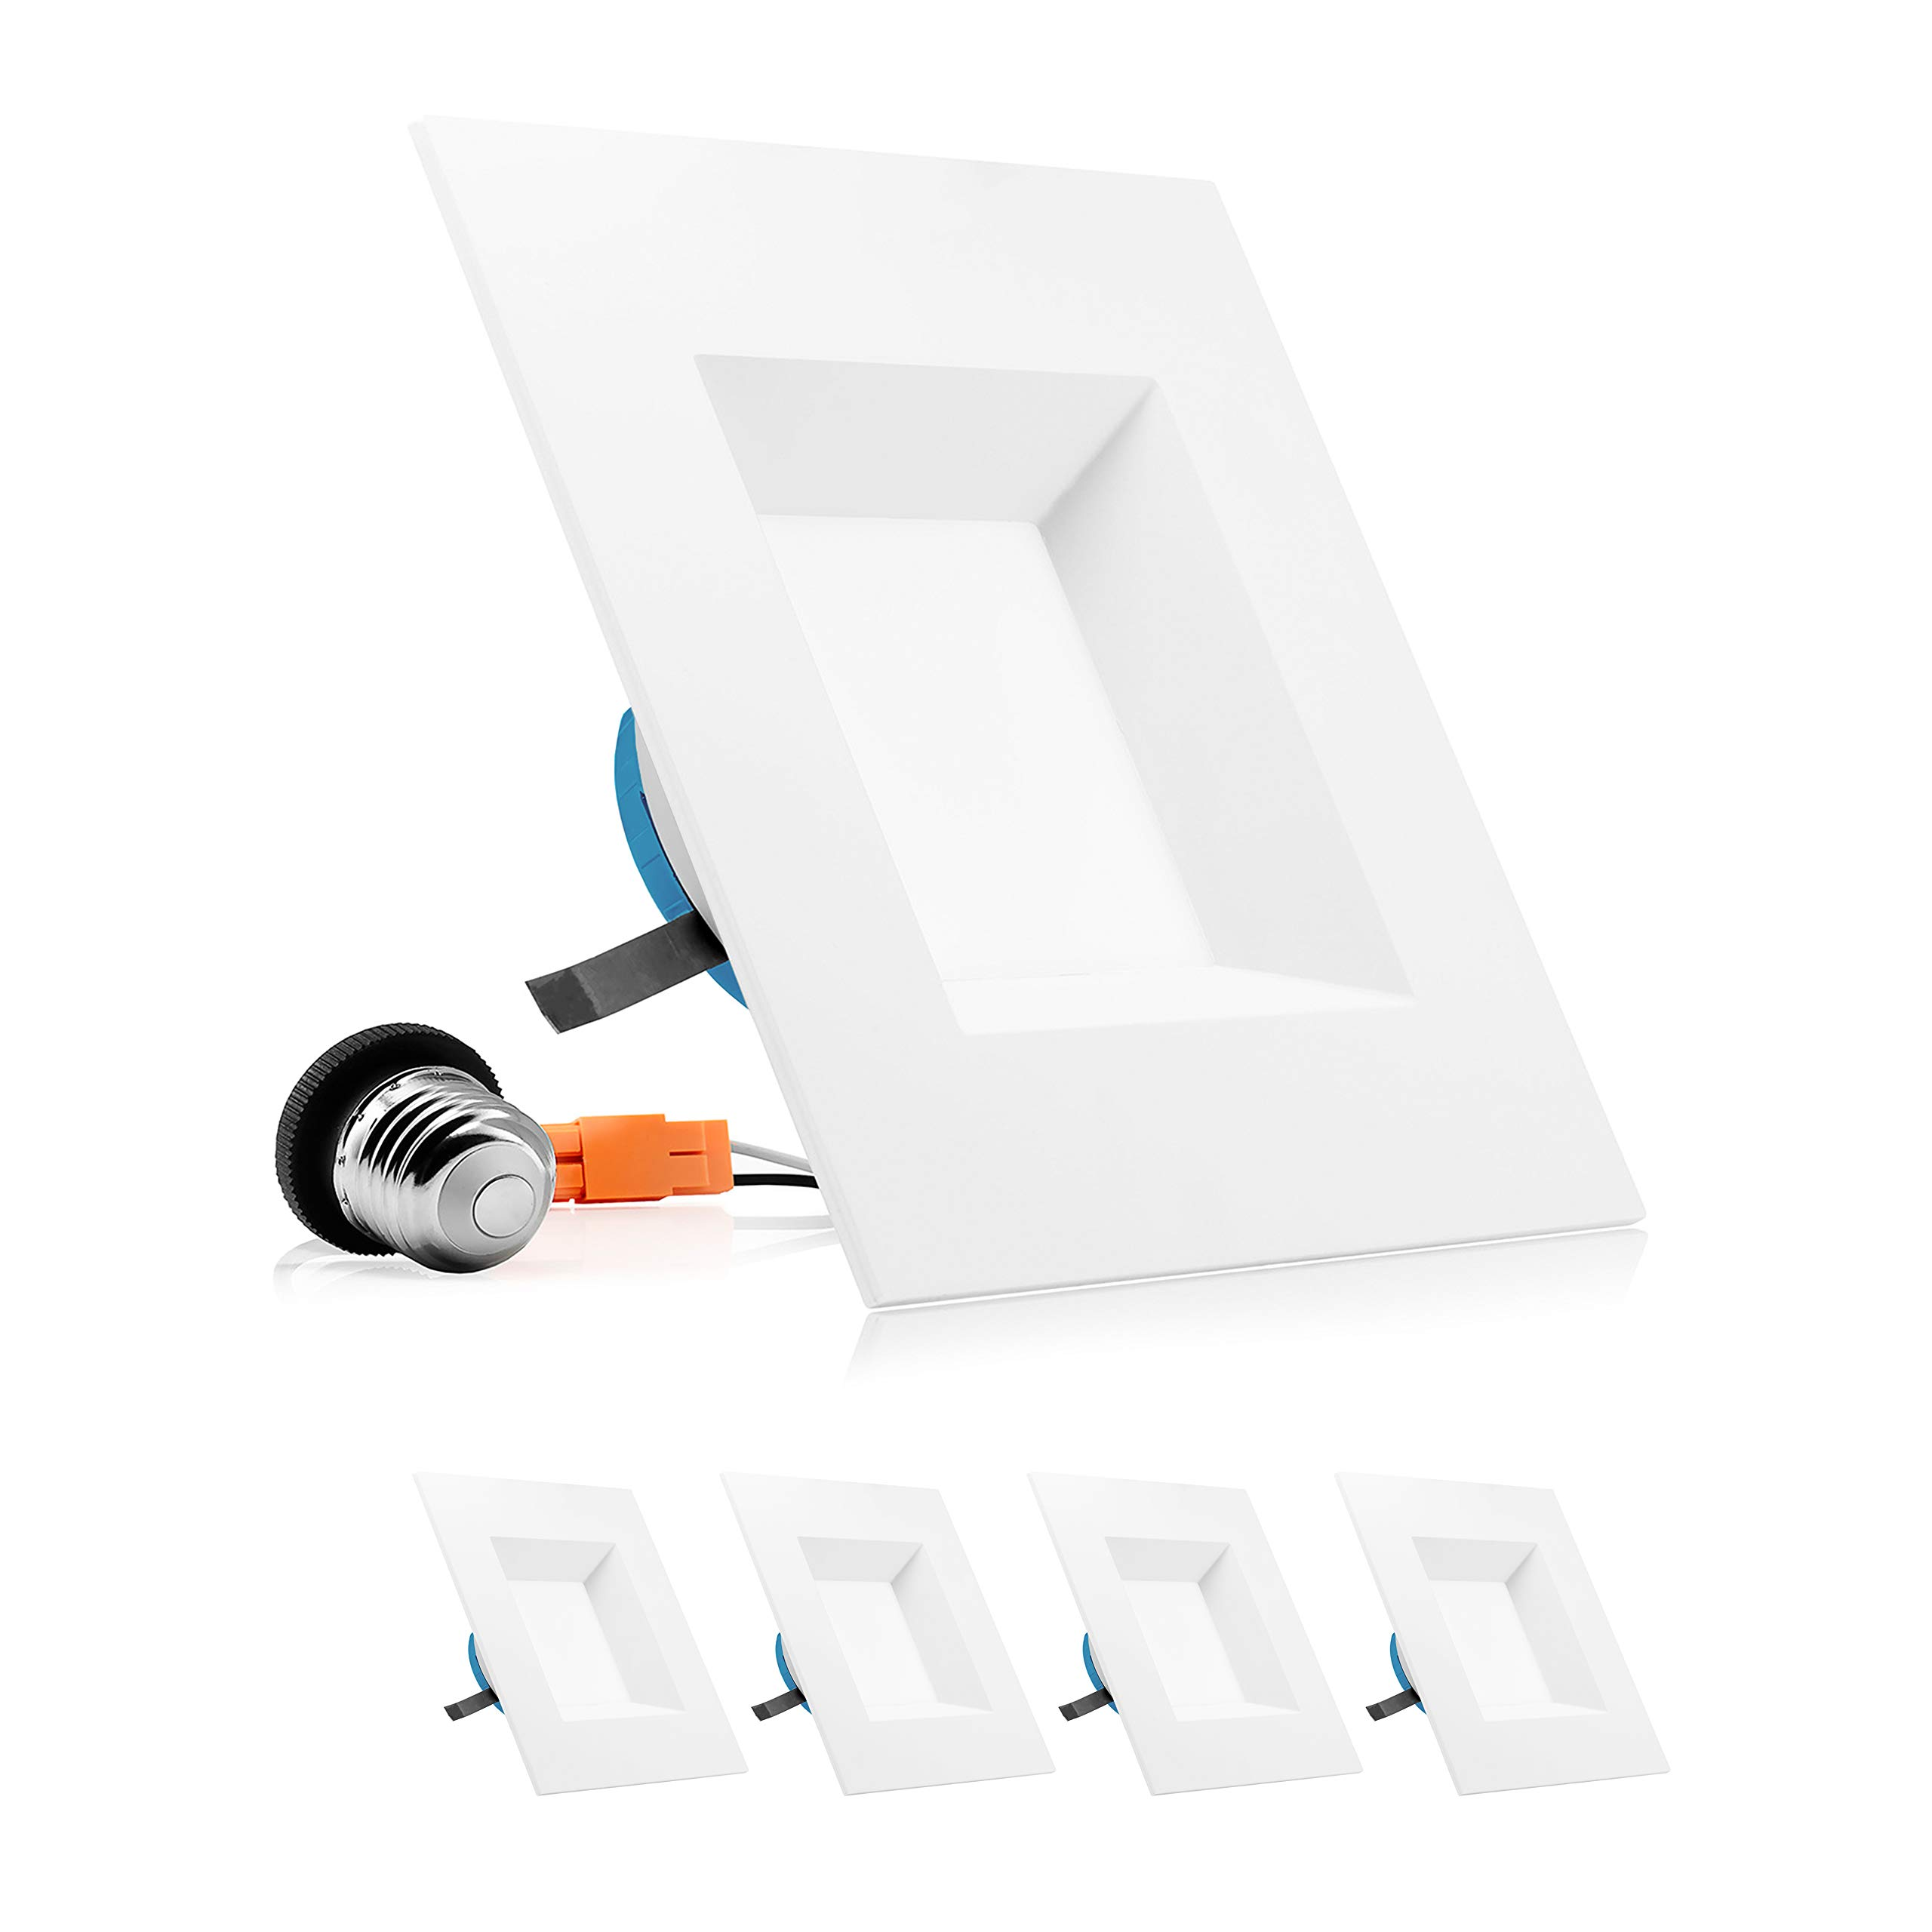 PARMIDA 6 inch Dimmable LED Square Recessed Retrofit Lighting, Easy Downlight Installation, 12W (100W Eqv.), 950lm, Ceiling Can Lights, Energy Star & ETL-Listed, 5 Year Warranty, 5000K - 4 Pack